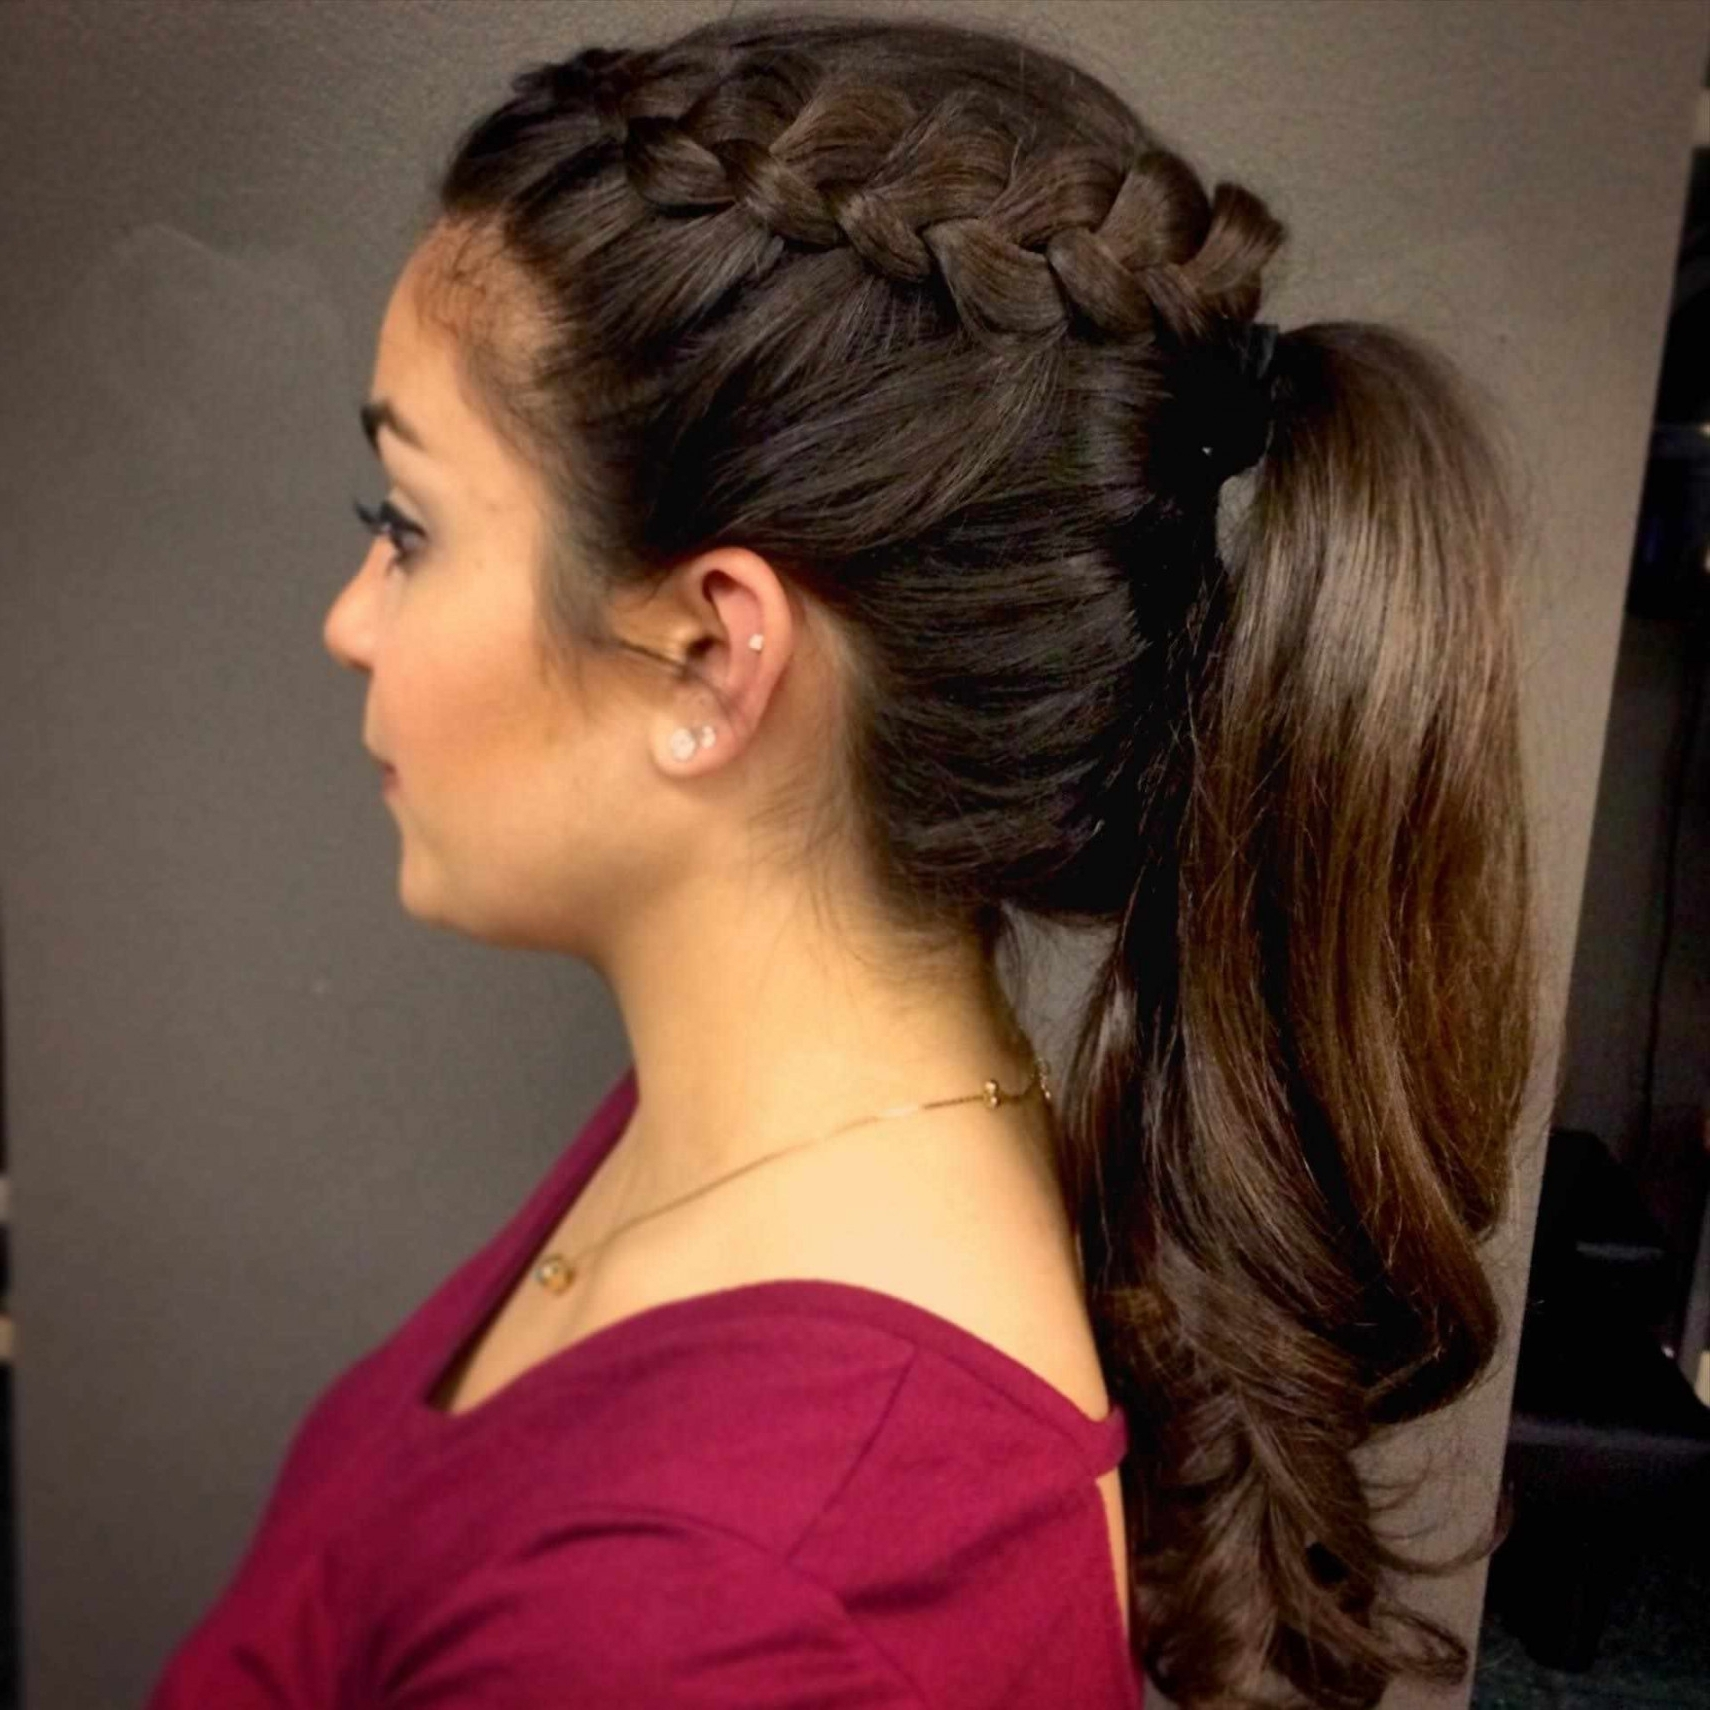 Tenders Side Pony Updo Simple Ponytail Hairstyle For Weddings Within Ponytail Updo Hairstyles (View 1 of 15)